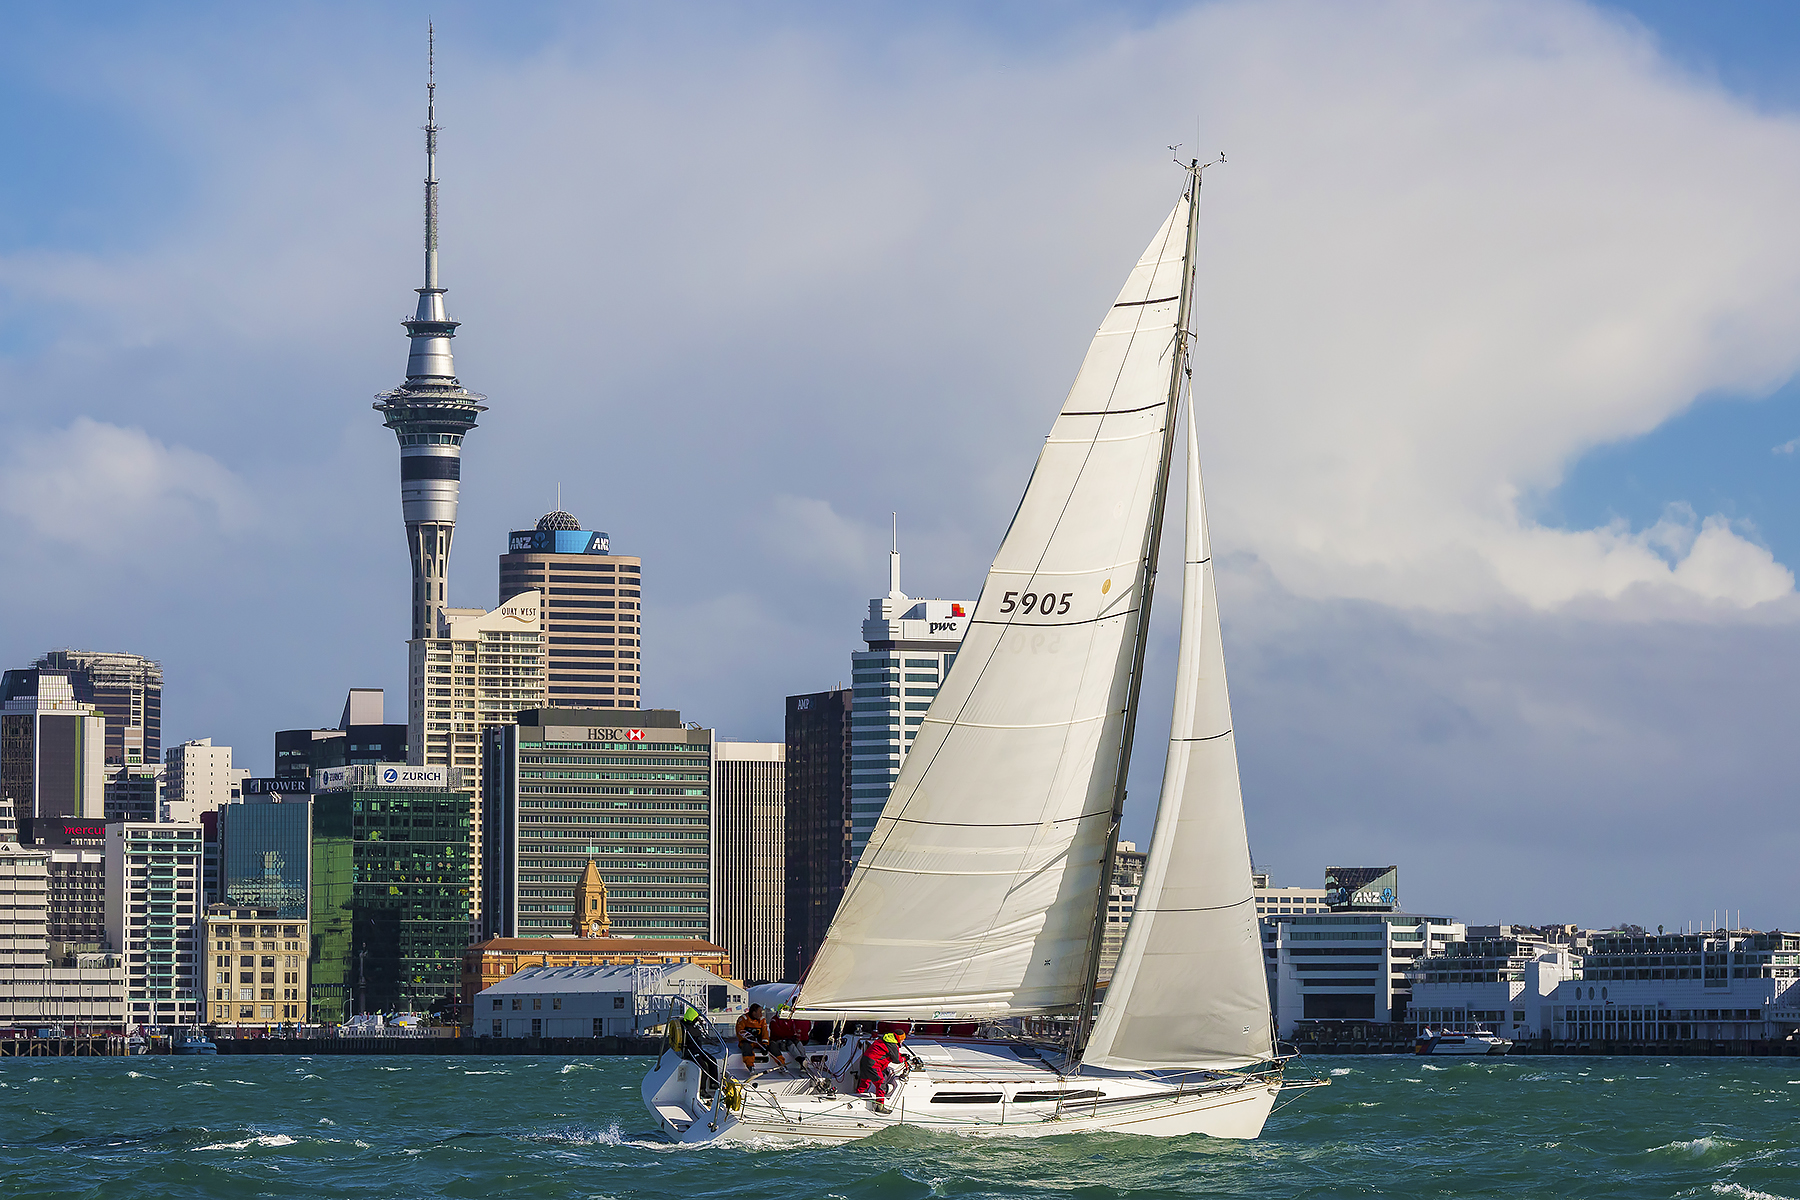 Richmond Yacht Club Race Auckland